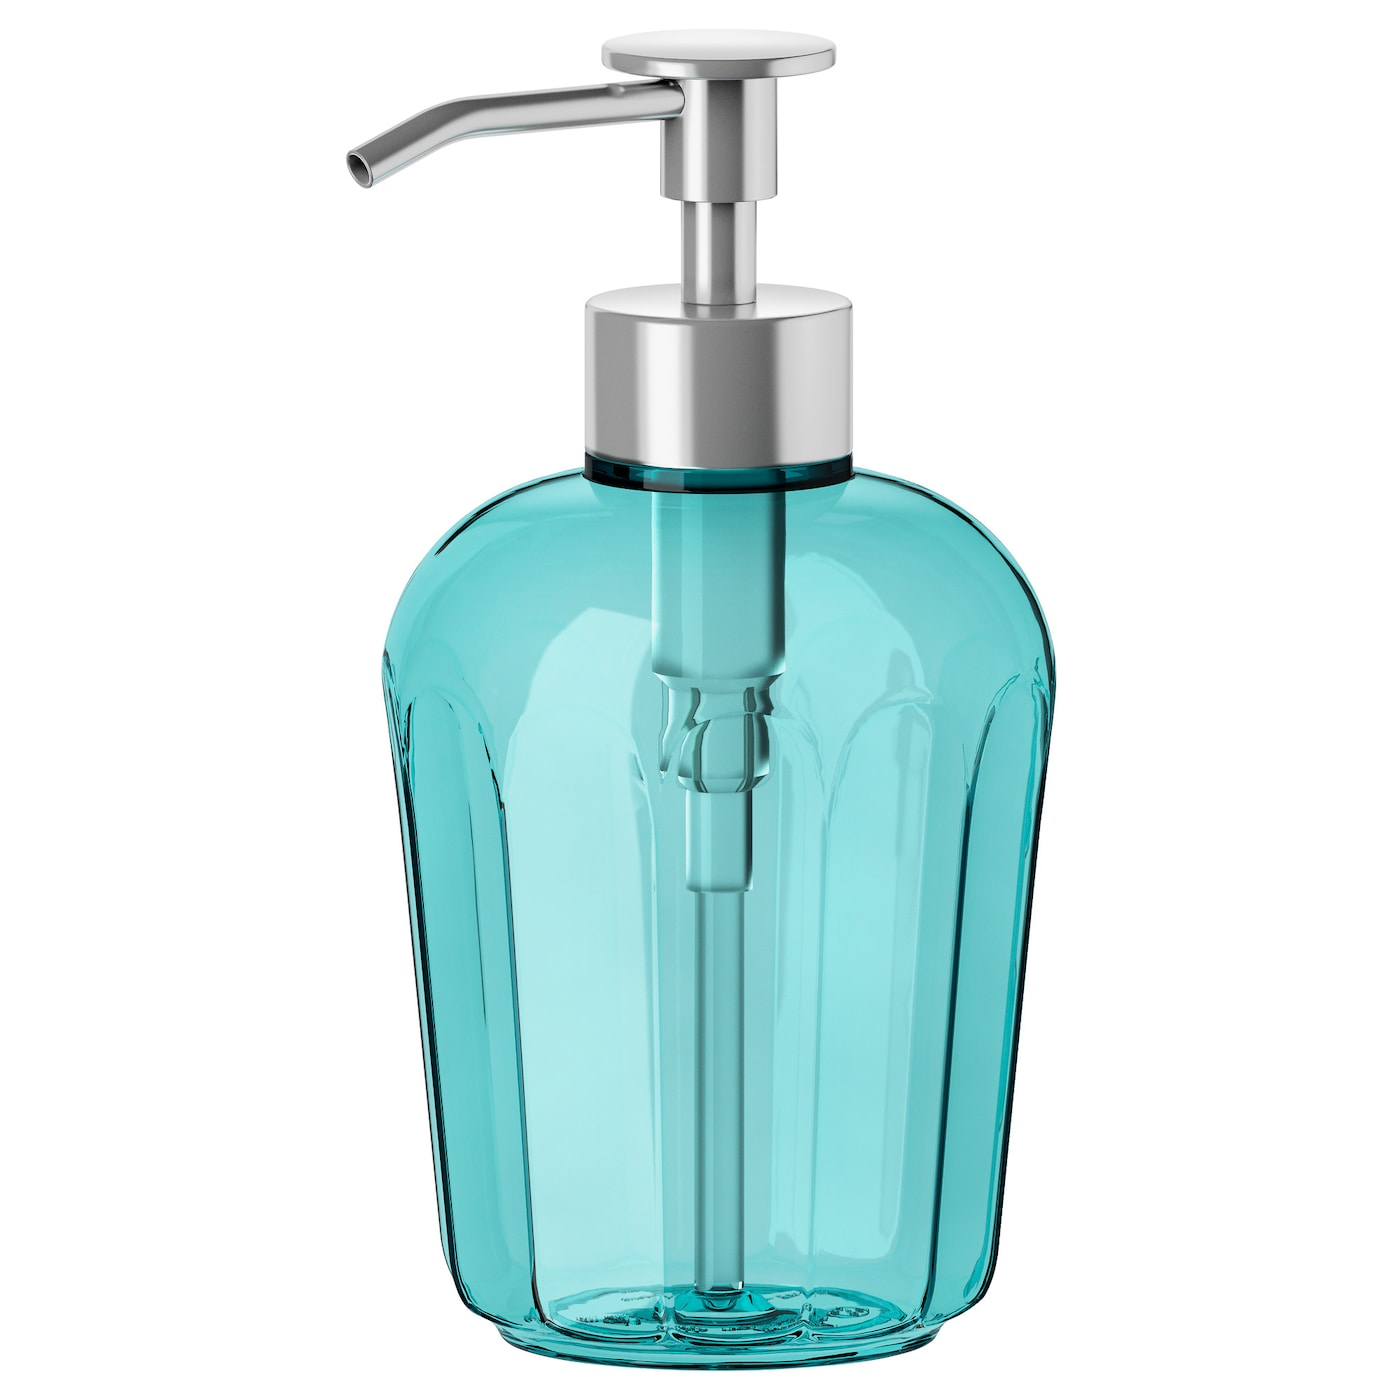 Plastic bathroom accessories uk - Ikea Svartsj N Soap Dispenser Easy To Refill As The Dispenser Has A Wide Opening